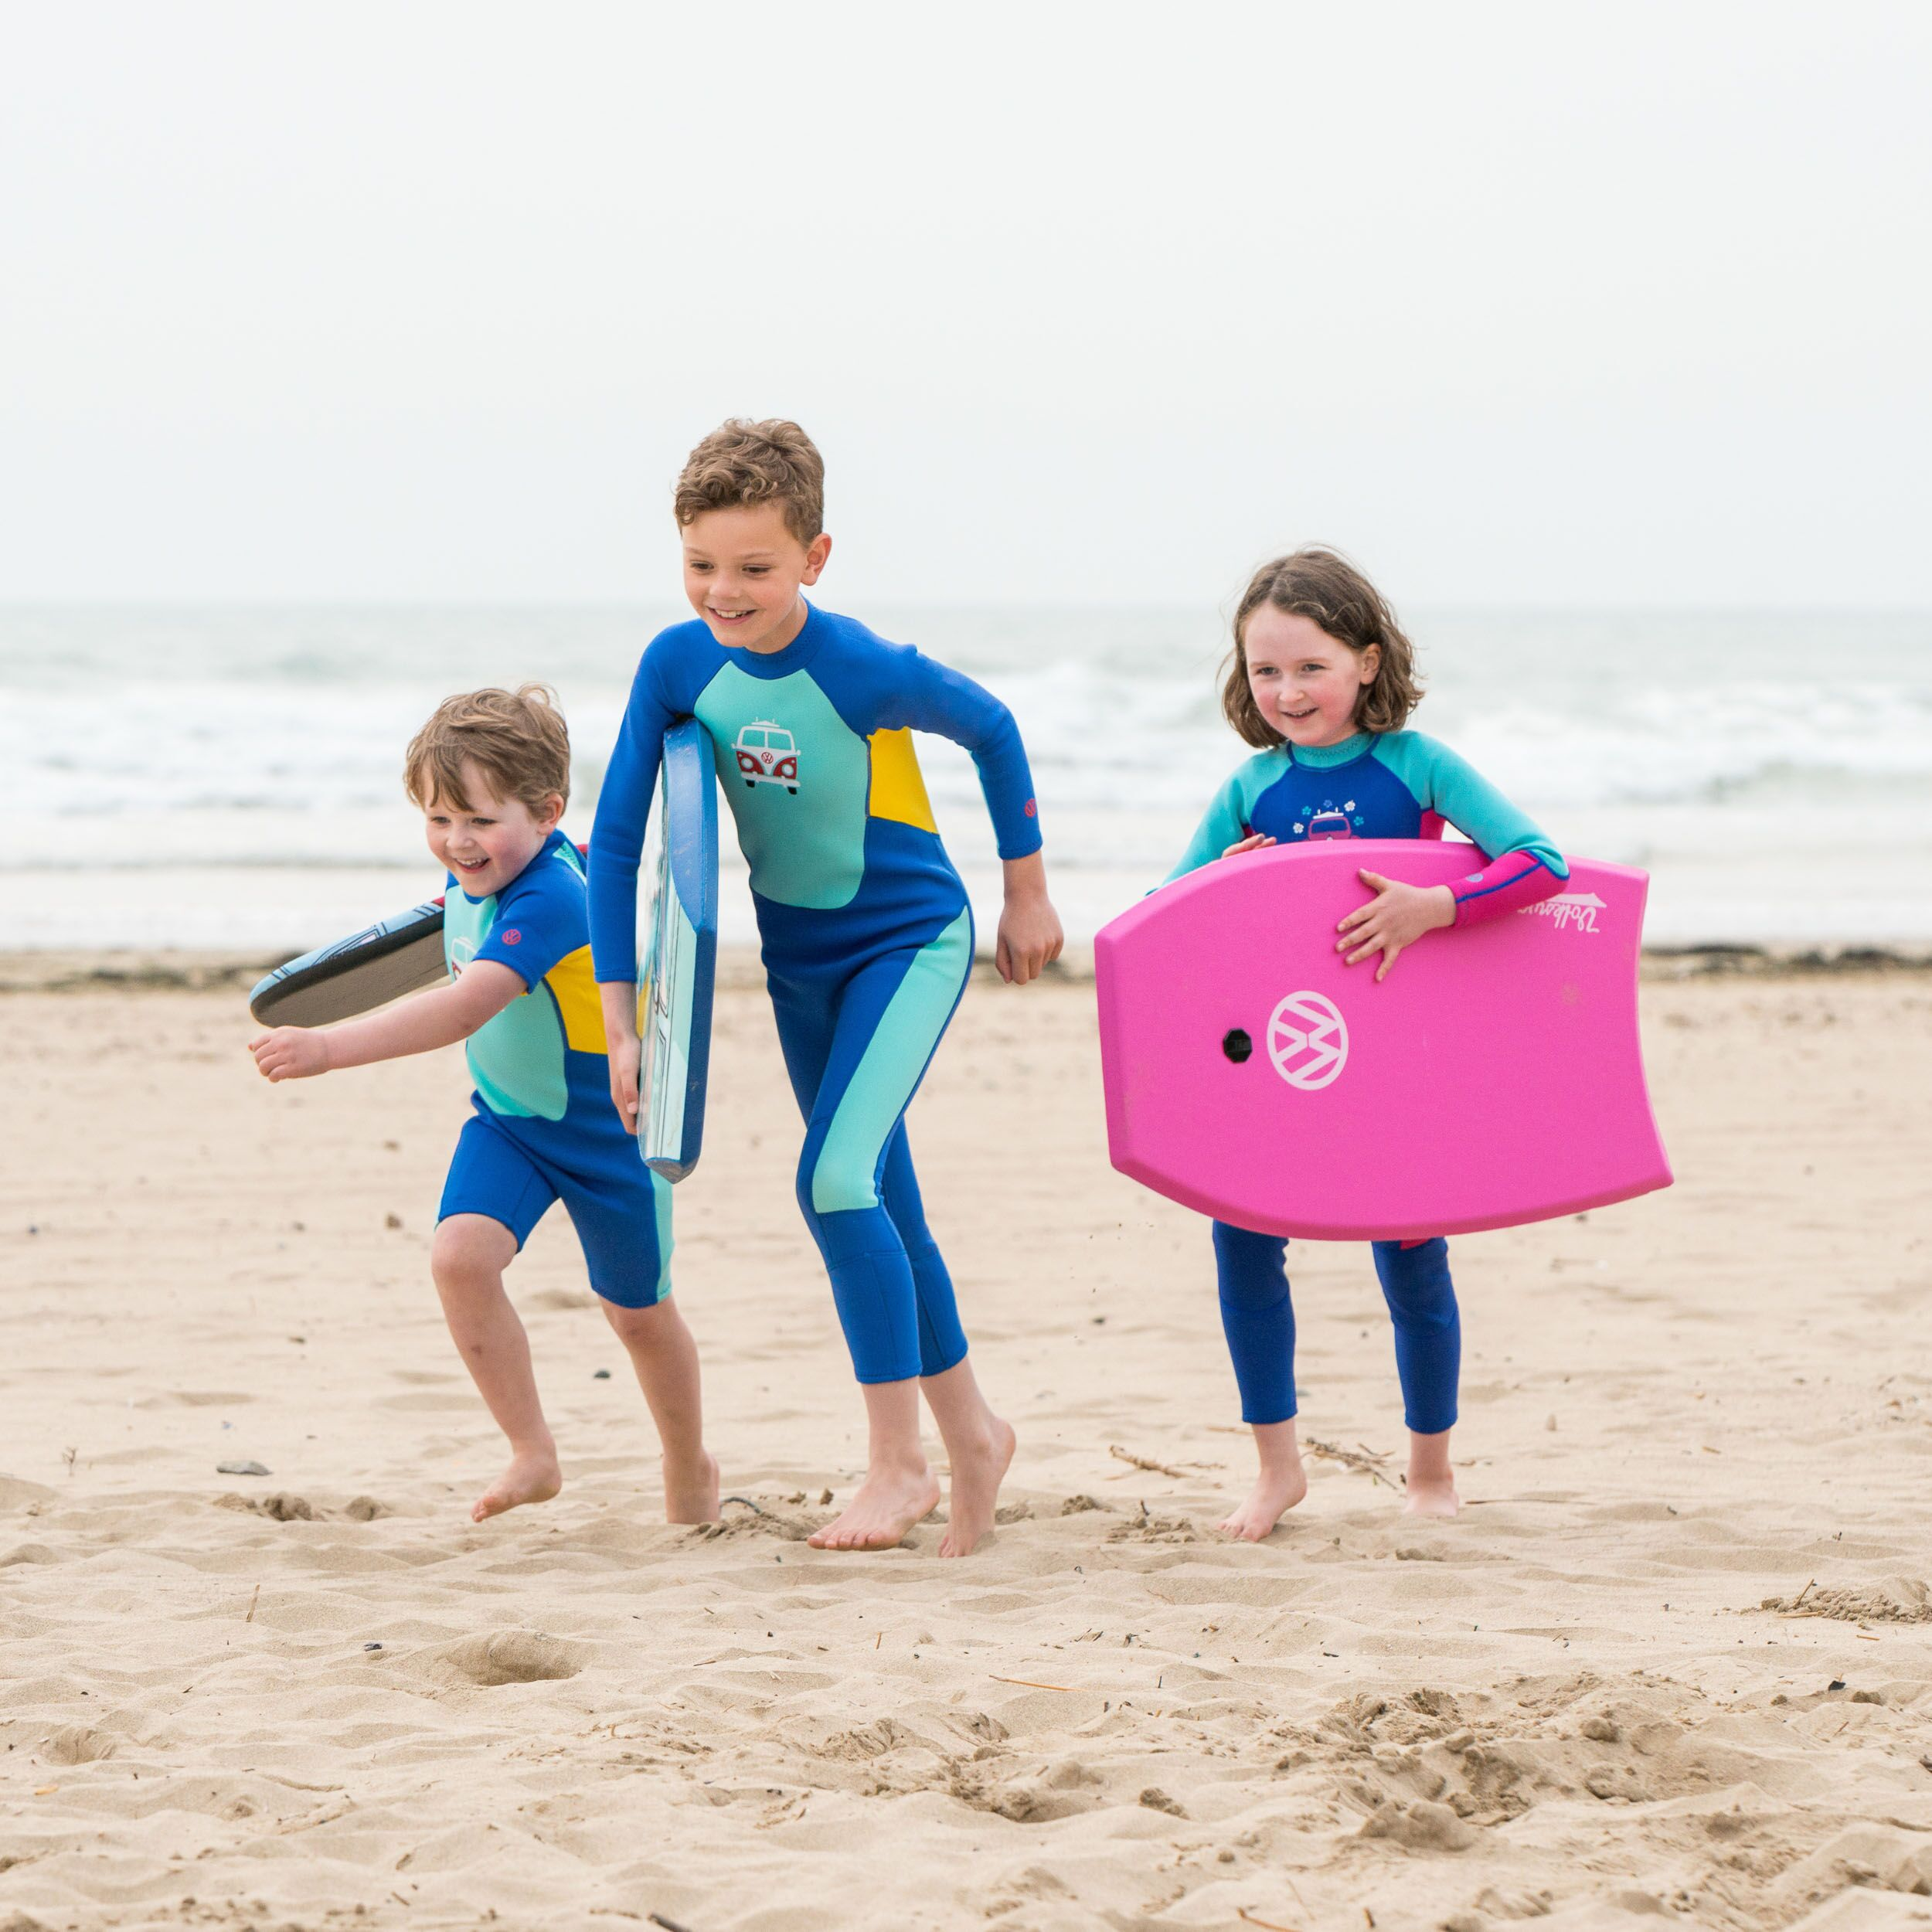 How to choose the correct size bodyboard…